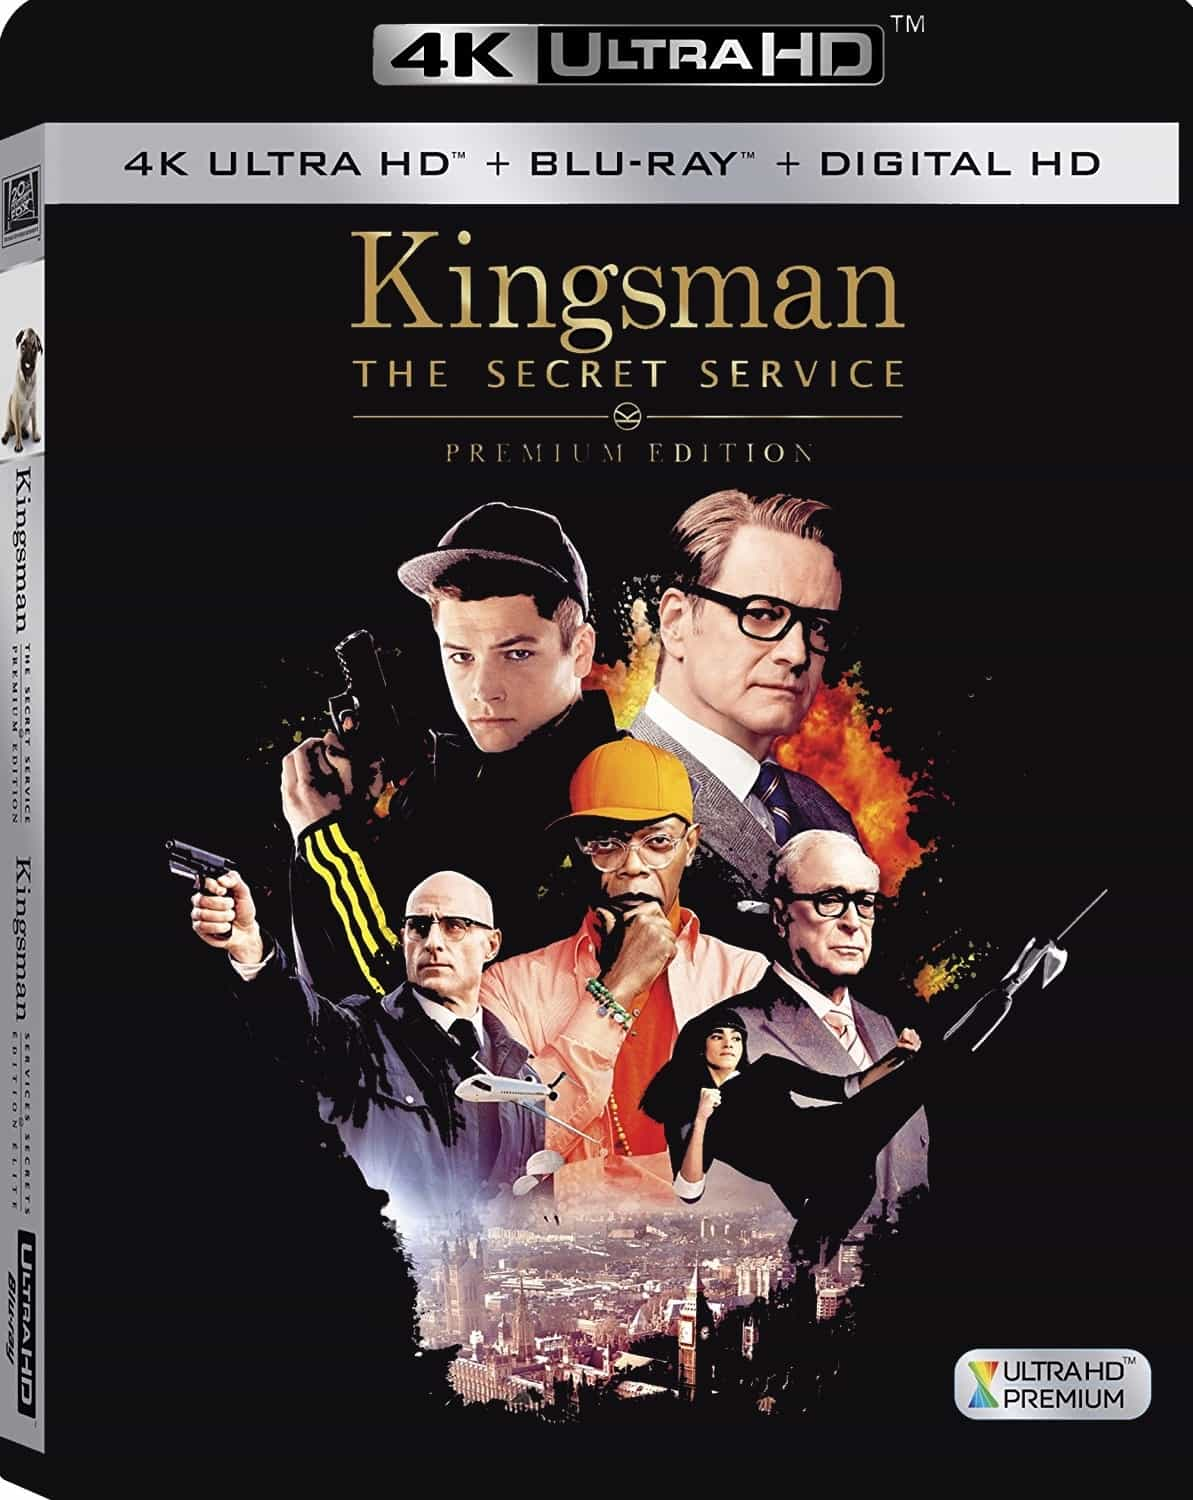 Kingsman The Secret Service 4K 2014 Ultra HD 2160p